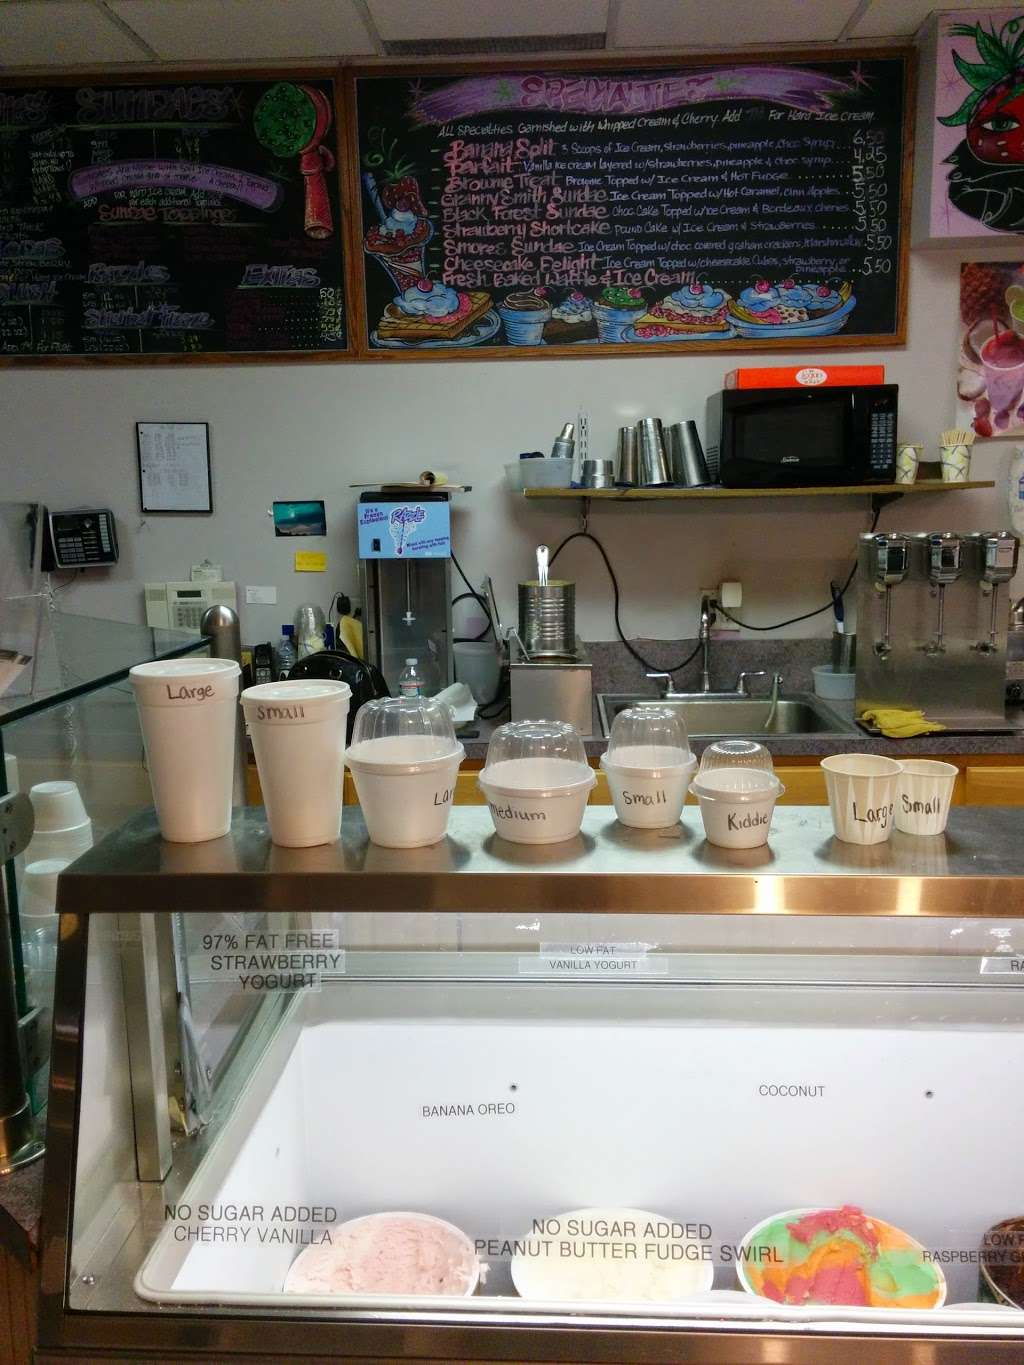 Mikes Ice Cream - store  | Photo 1 of 7 | Address: 1540 Paterson Plank Rd, Secaucus, NJ 07094, USA | Phone: (201) 863-6791